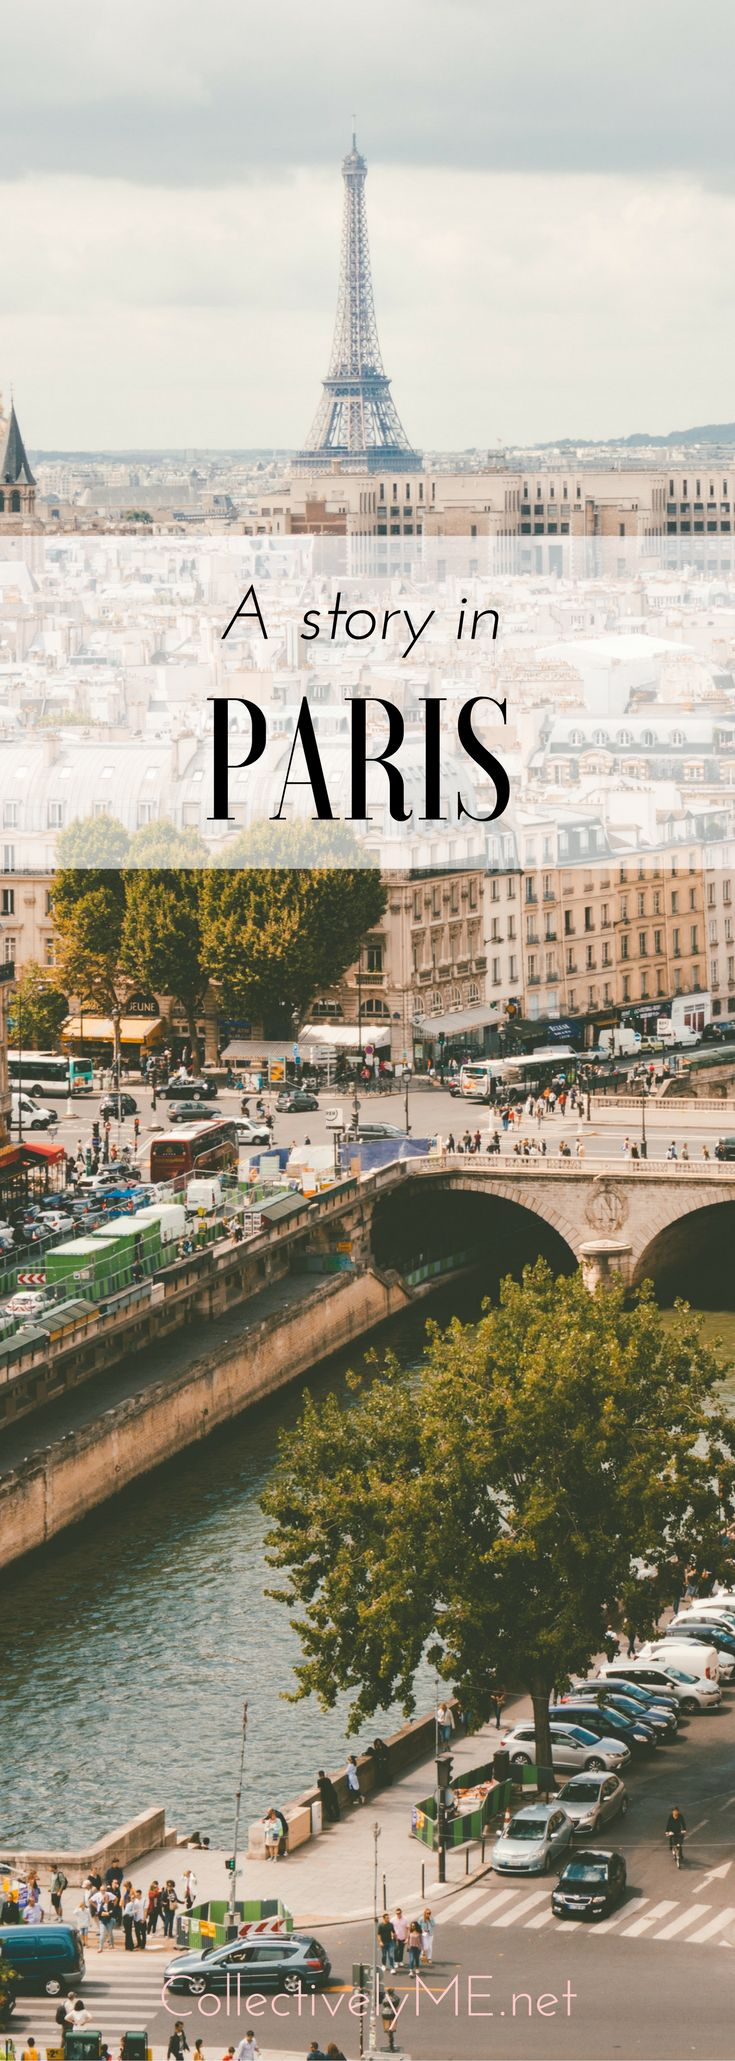 My birthday Story in Paris. Join me on our first day there where we learnt som lessons, found a cool bar and eat some delicous food! #Travel #Paris #wanderlust #Food #living #France Find out more @ Collectivelyme.net